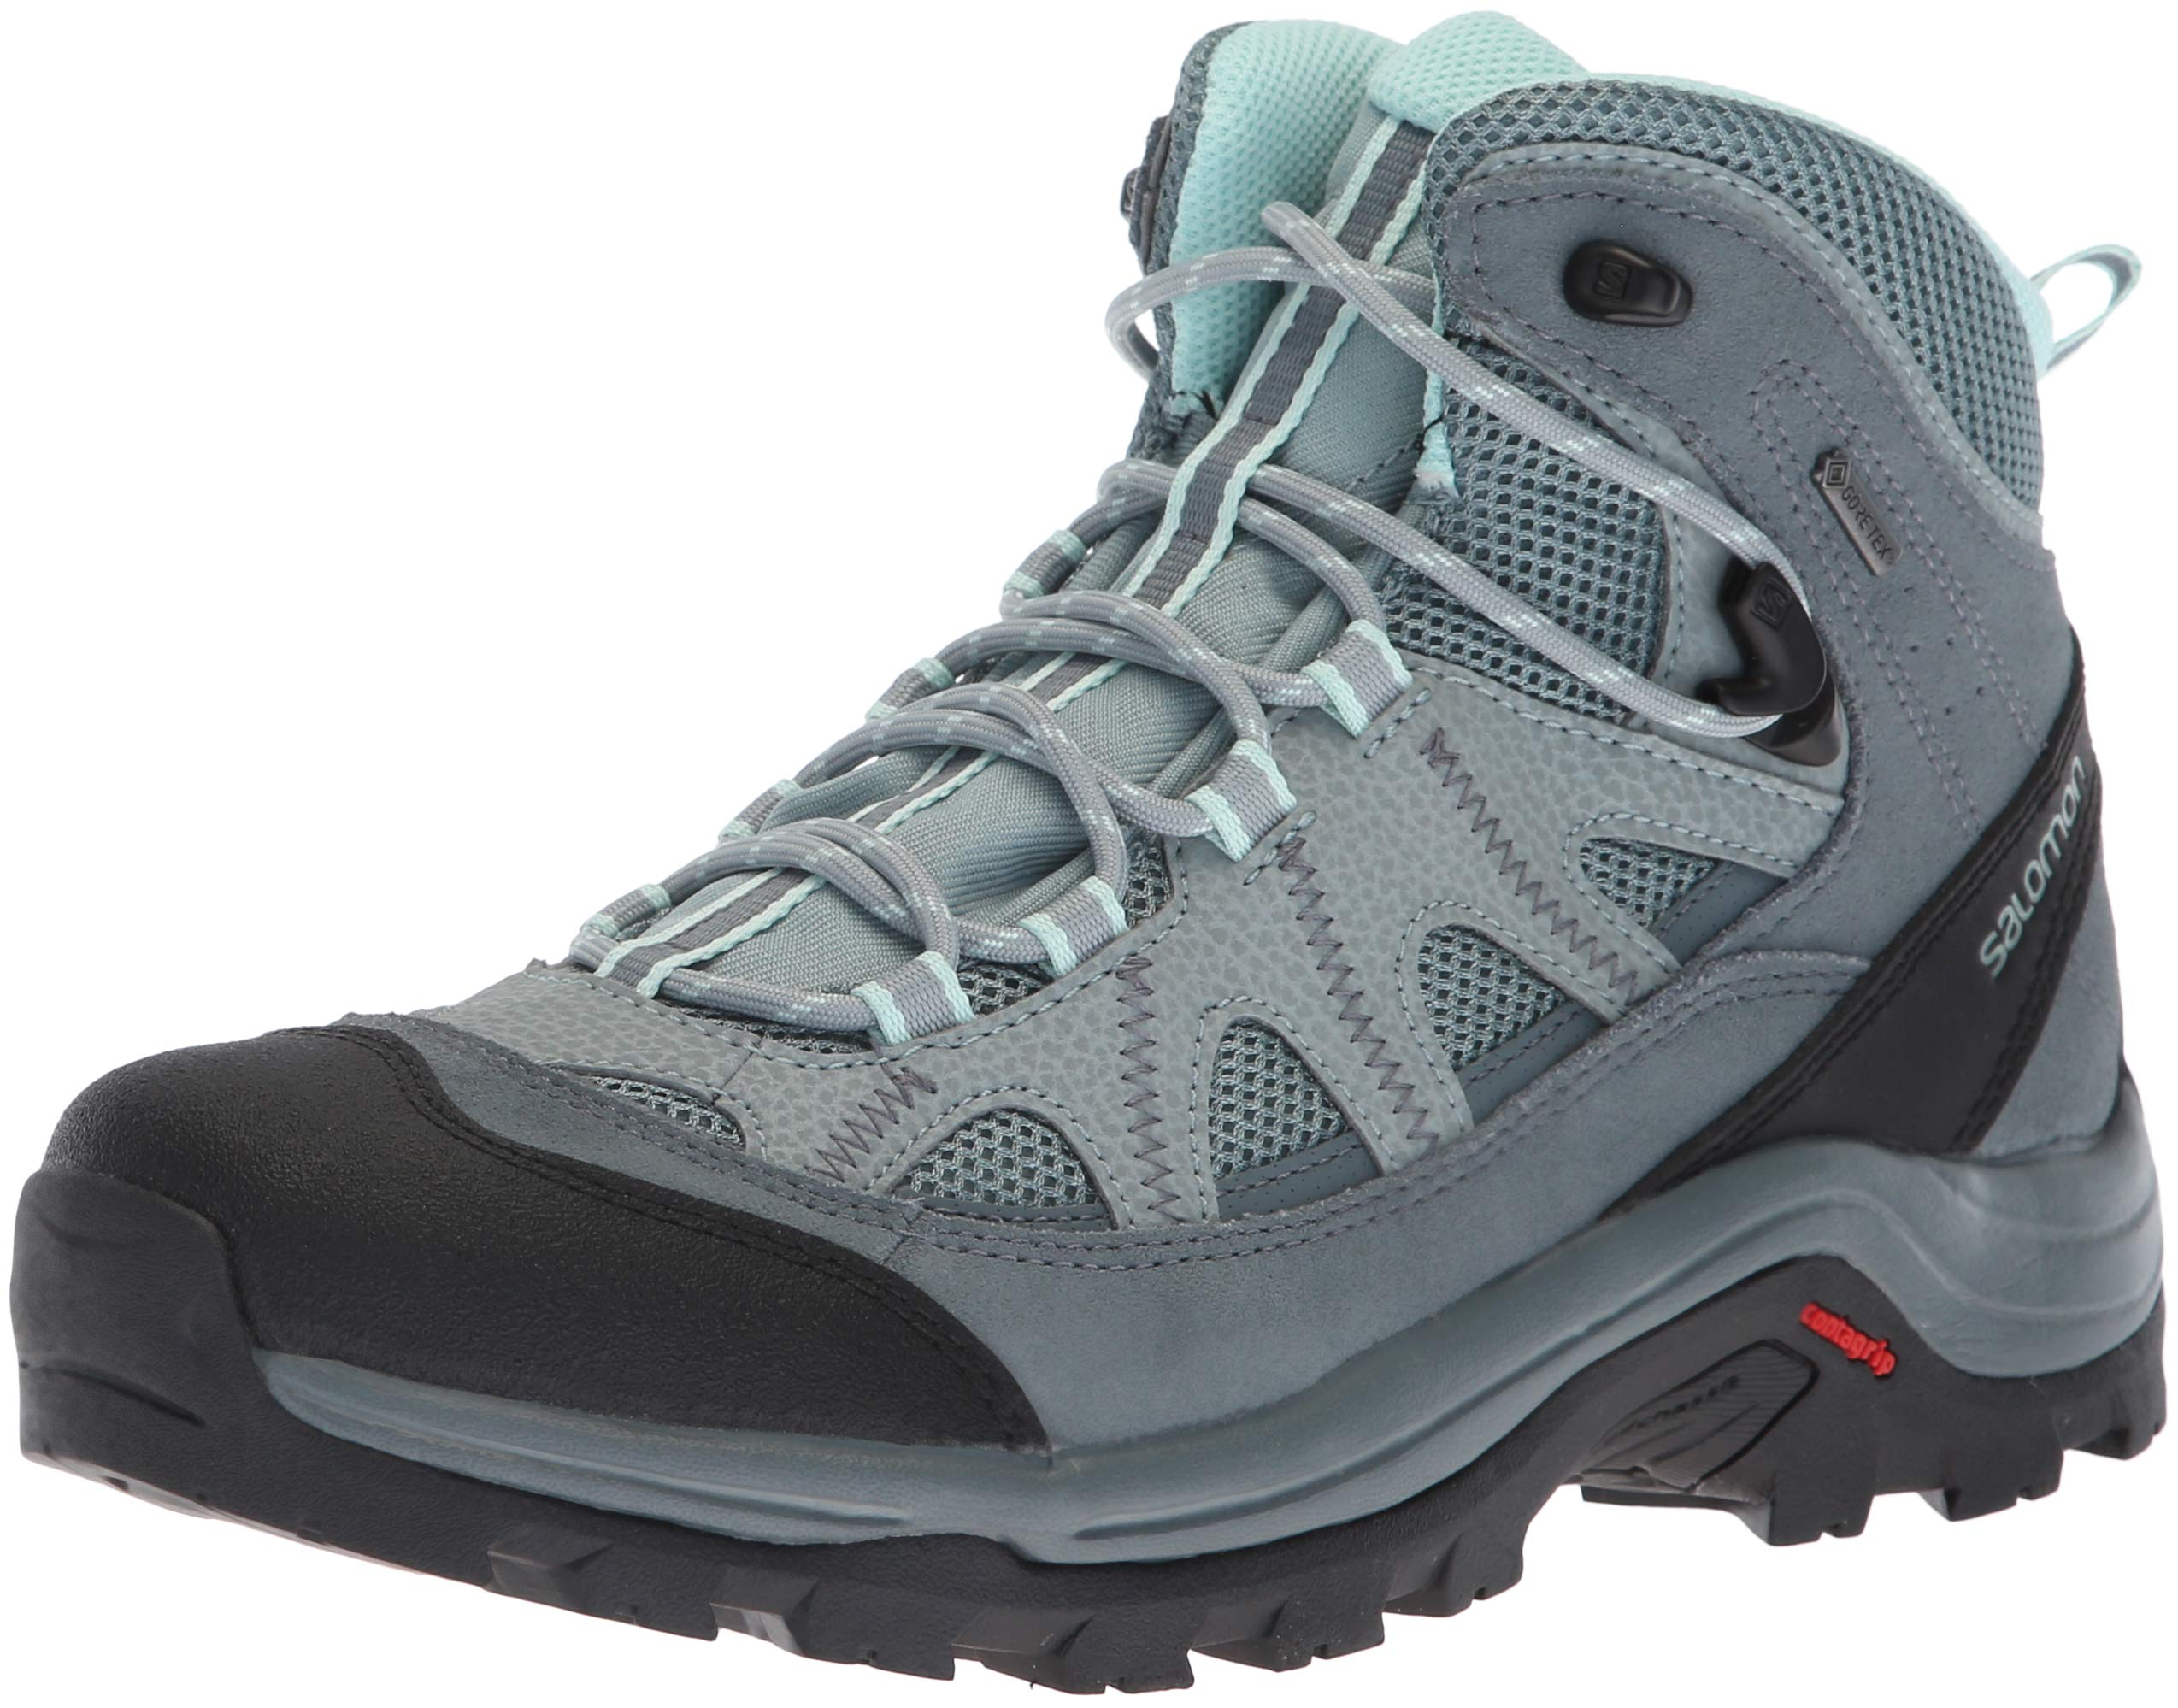 Salomon Women's Authentic LTR GTX W Backpacking Boot, Lead/Stormy Weather/Eggshell Blue, 8 B US